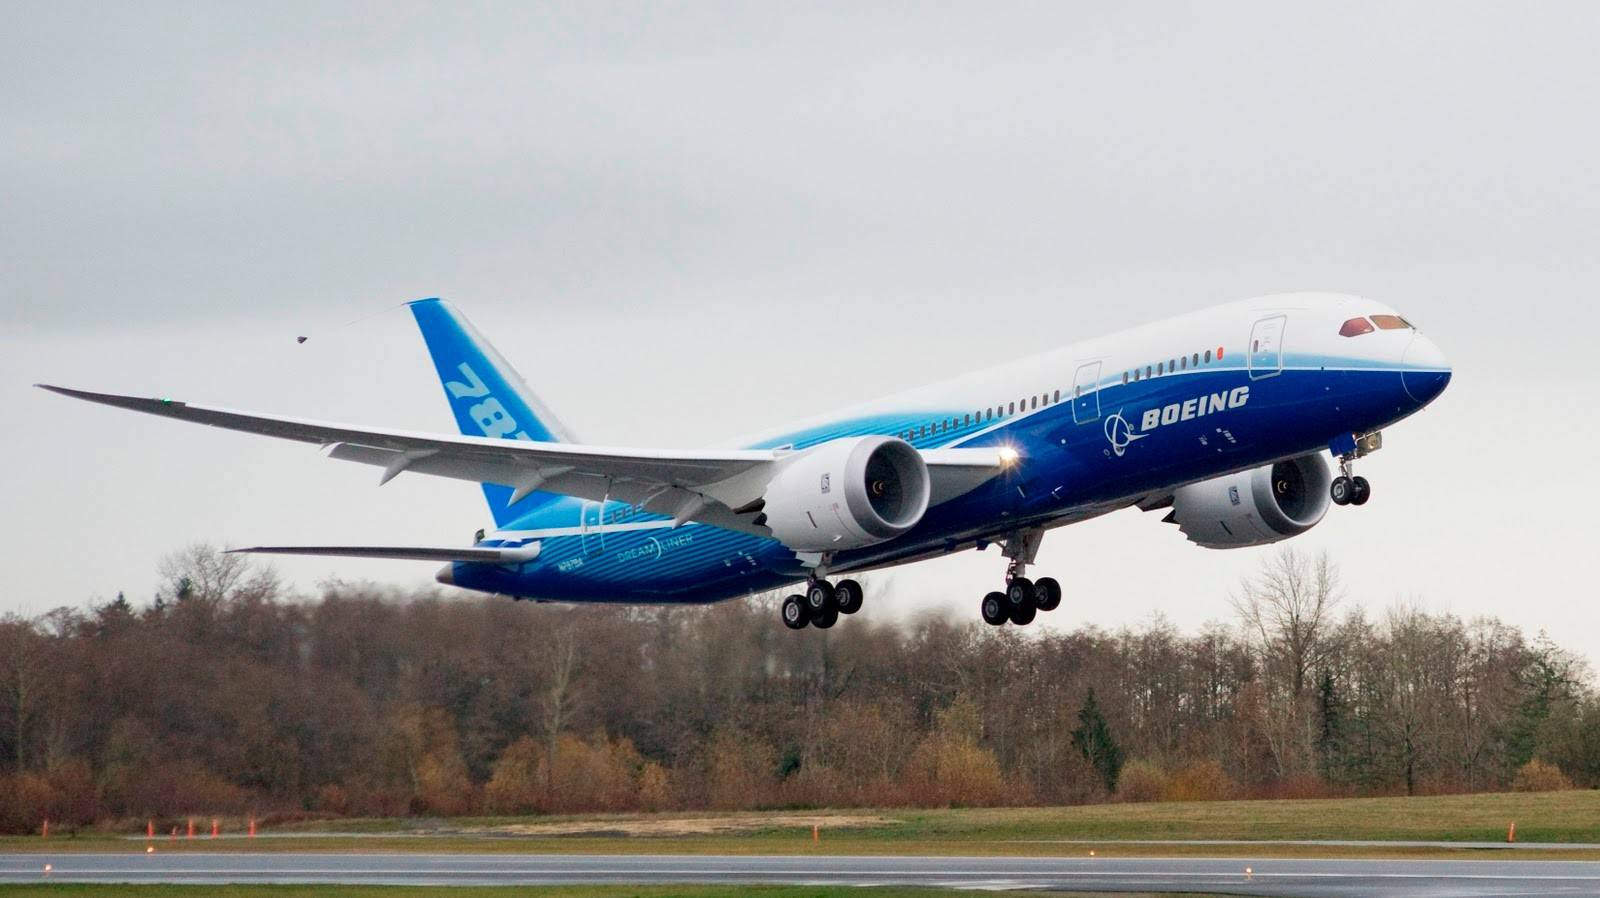 Chicago-based Boeing will raise production of its 787 Dreamliner in 2019, Chief Executive Officer Dennis Muilenburg said.